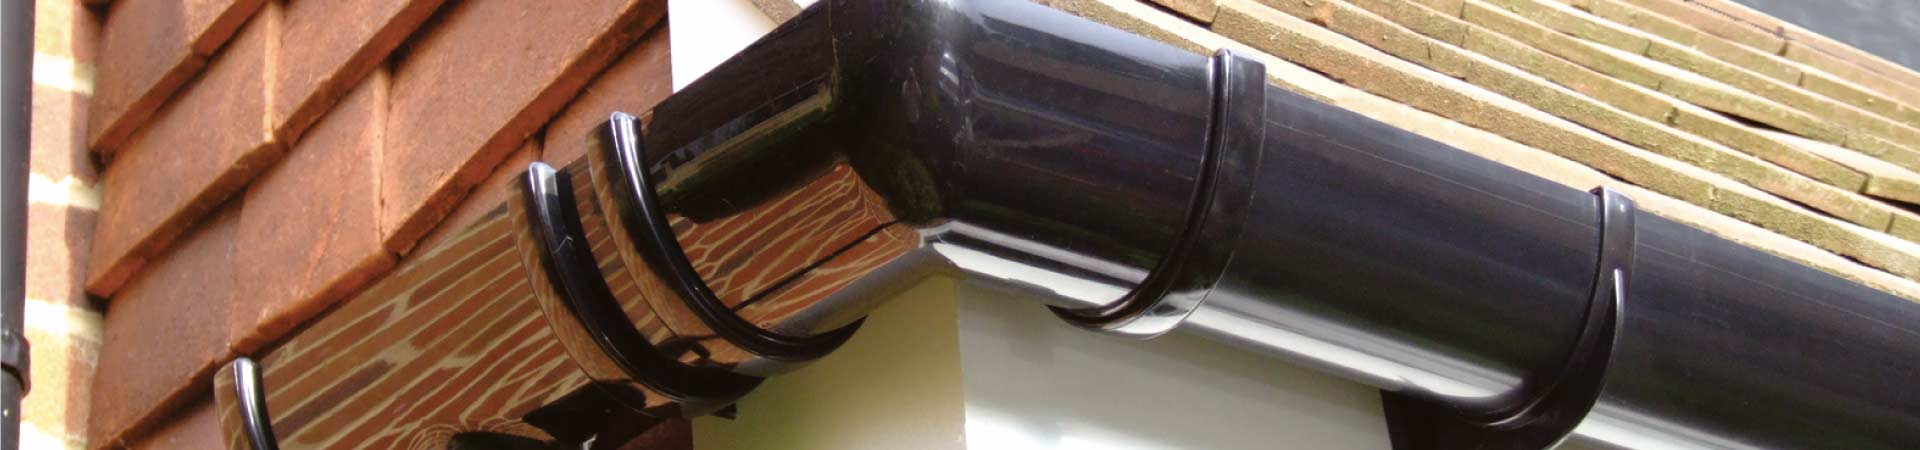 Upvc Guttering And Rainwater Systems By The Fascia Place